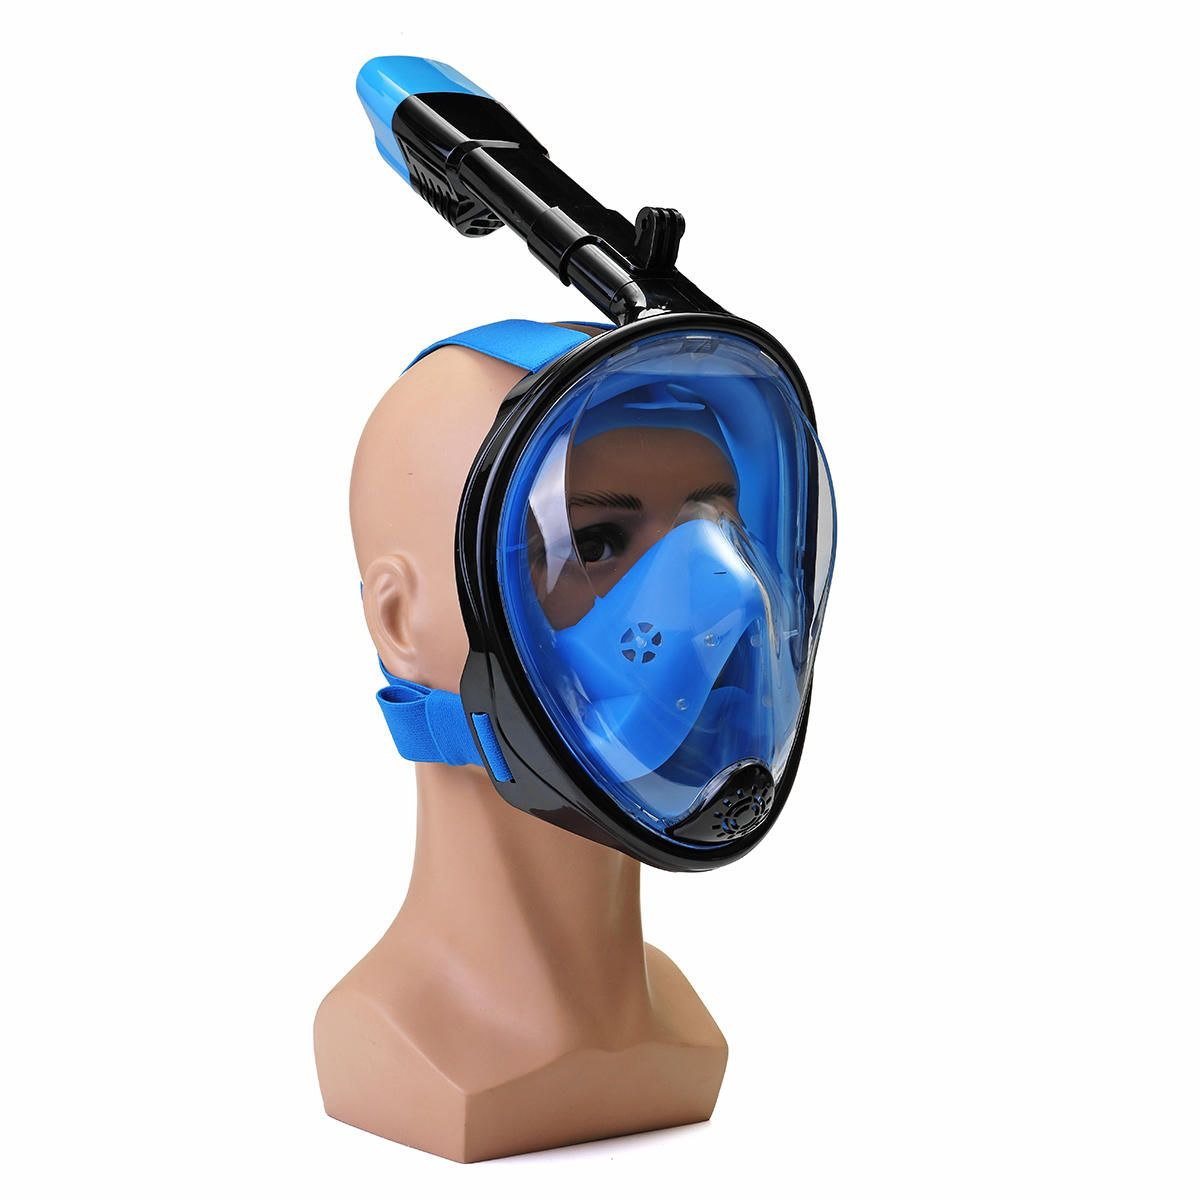 180° Viewing Area Full Dry Snorkeling Mask Fog Resistant Adjustment Diving Mask with a Camera Base